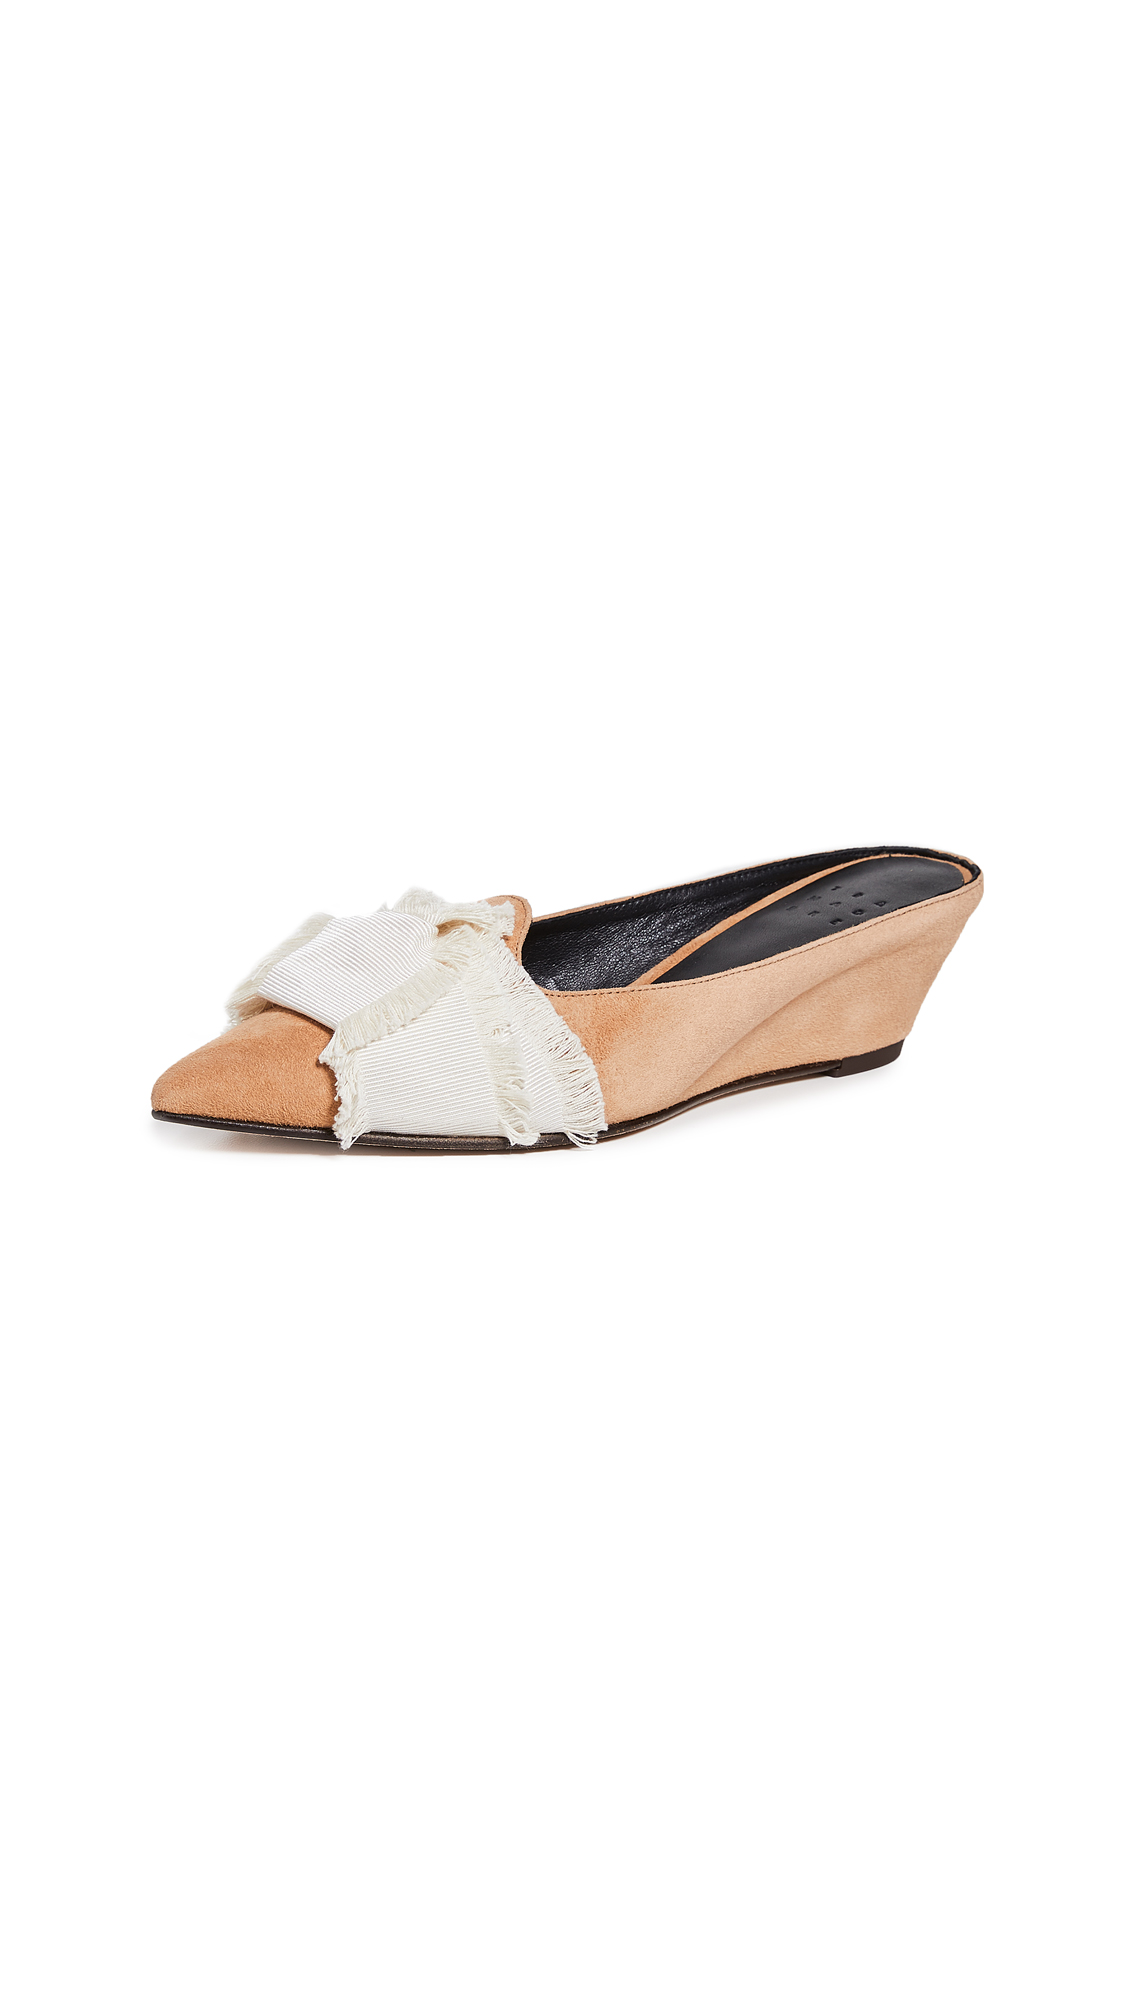 Trademark Knot Adrien Mules - Apricot